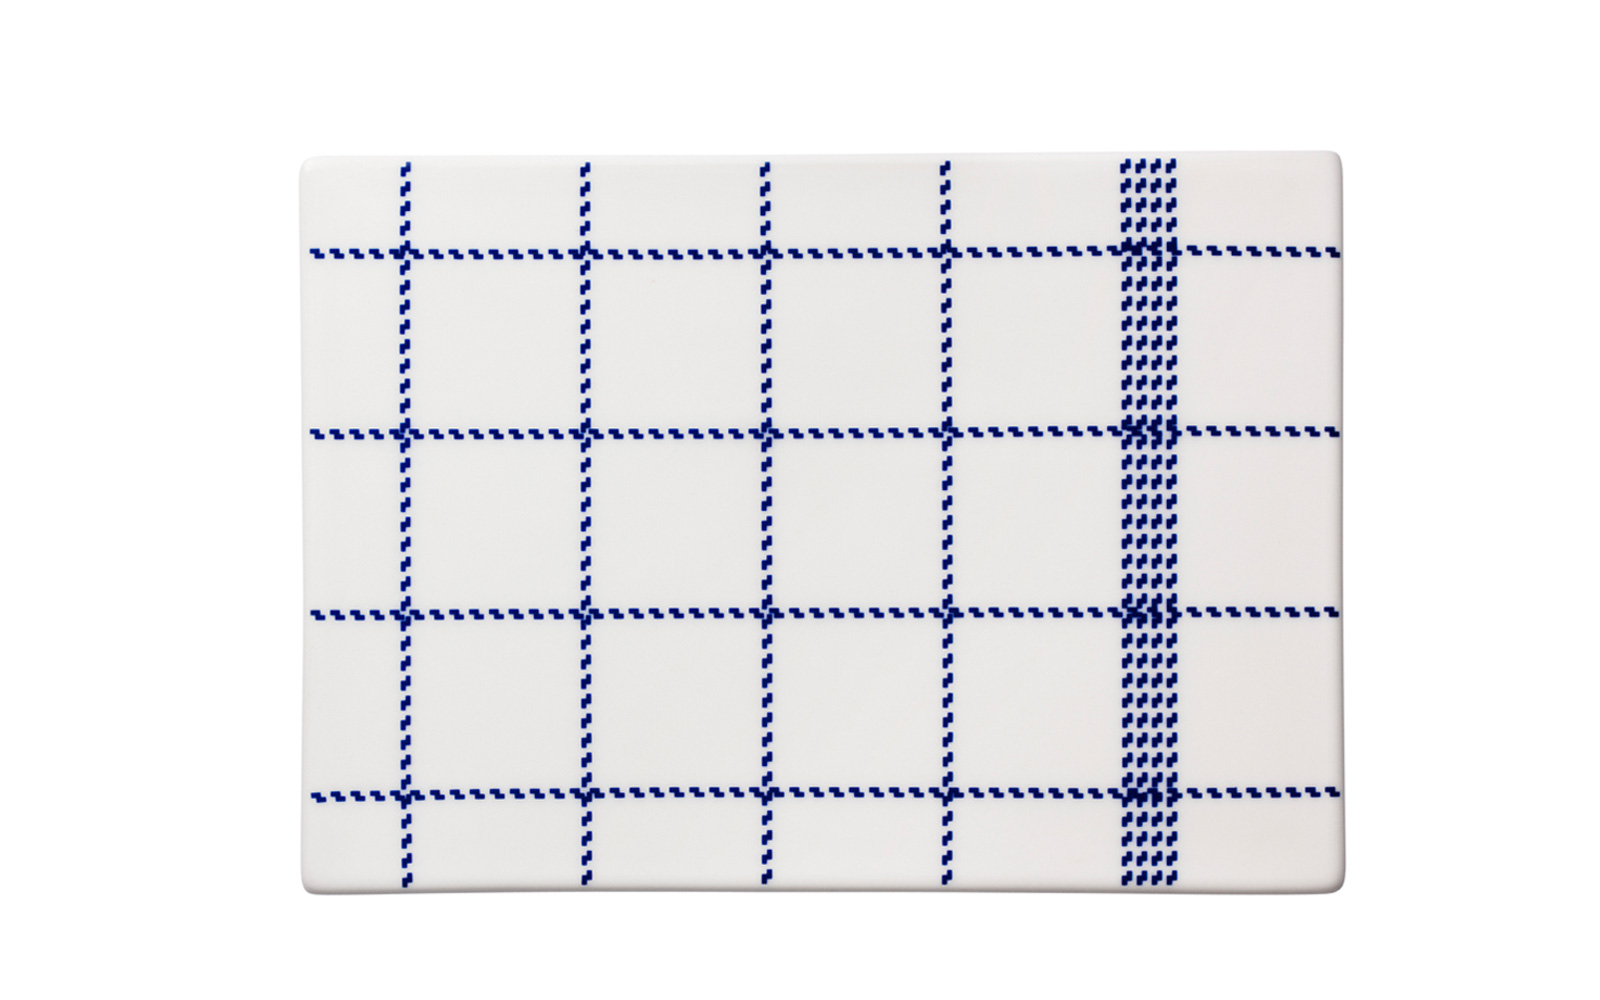 Mormor blue square buttering board large topview